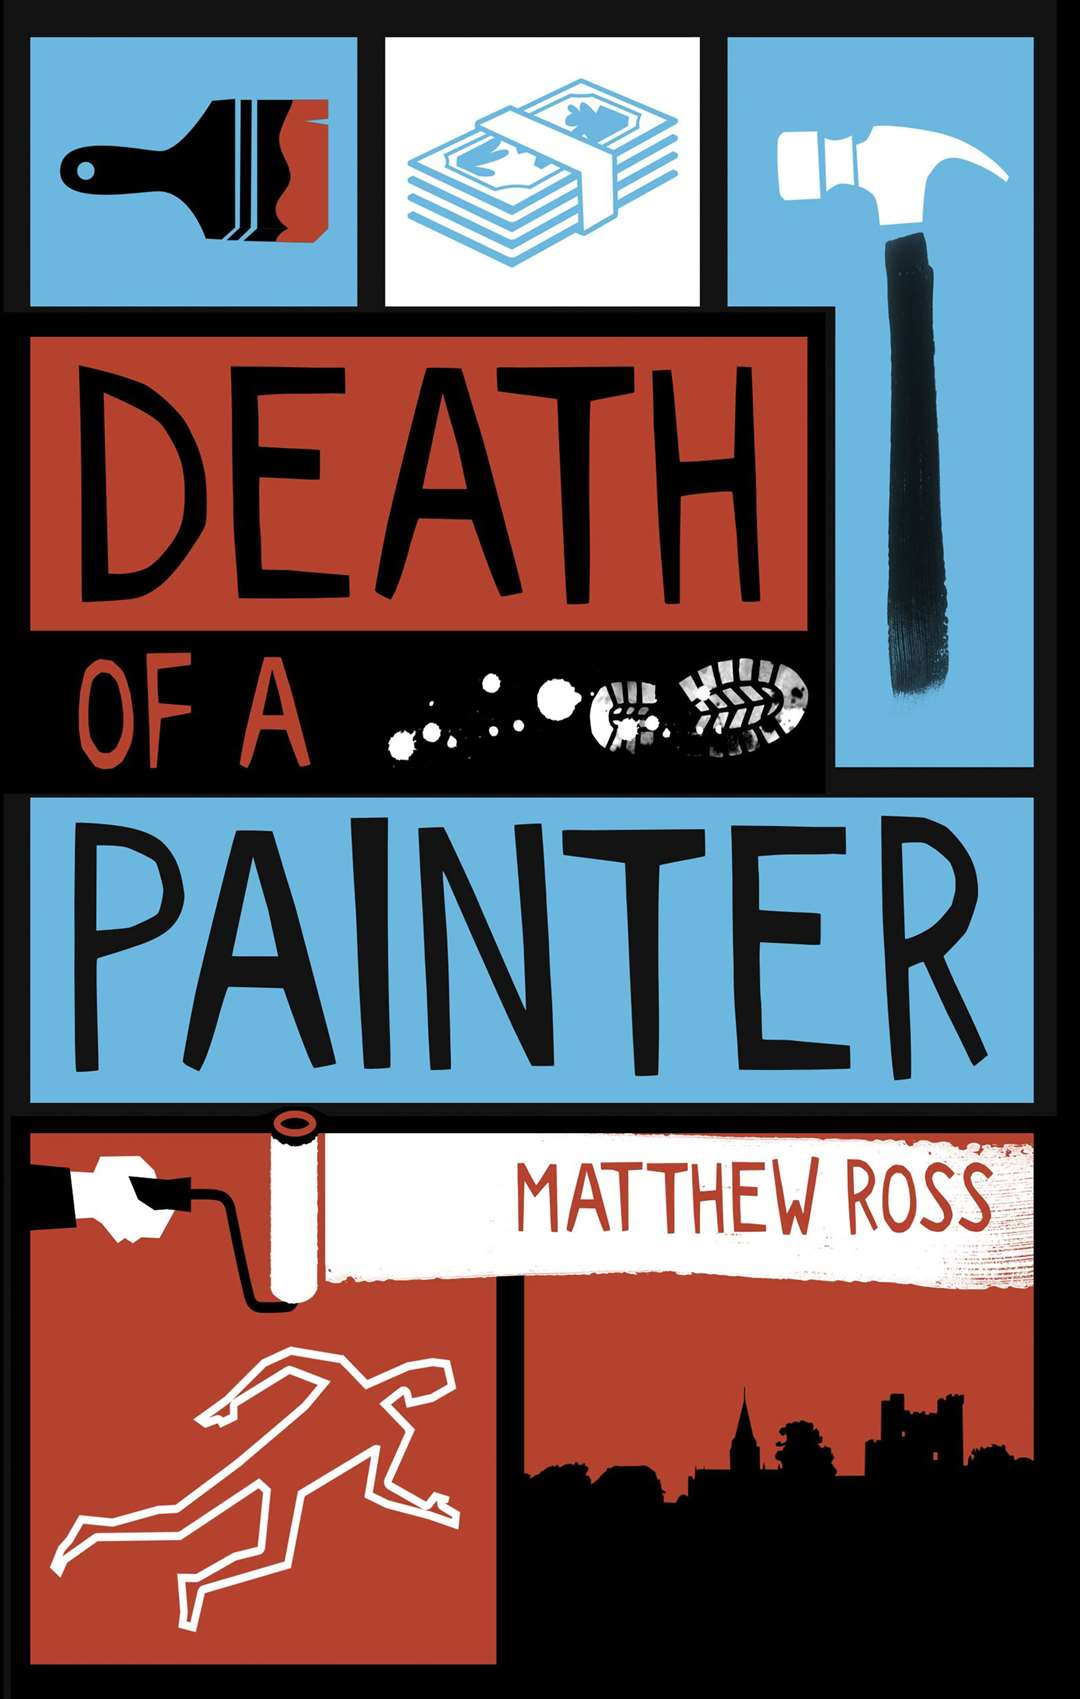 Death of a Painter was Matthew Ross's debut novel in 2020